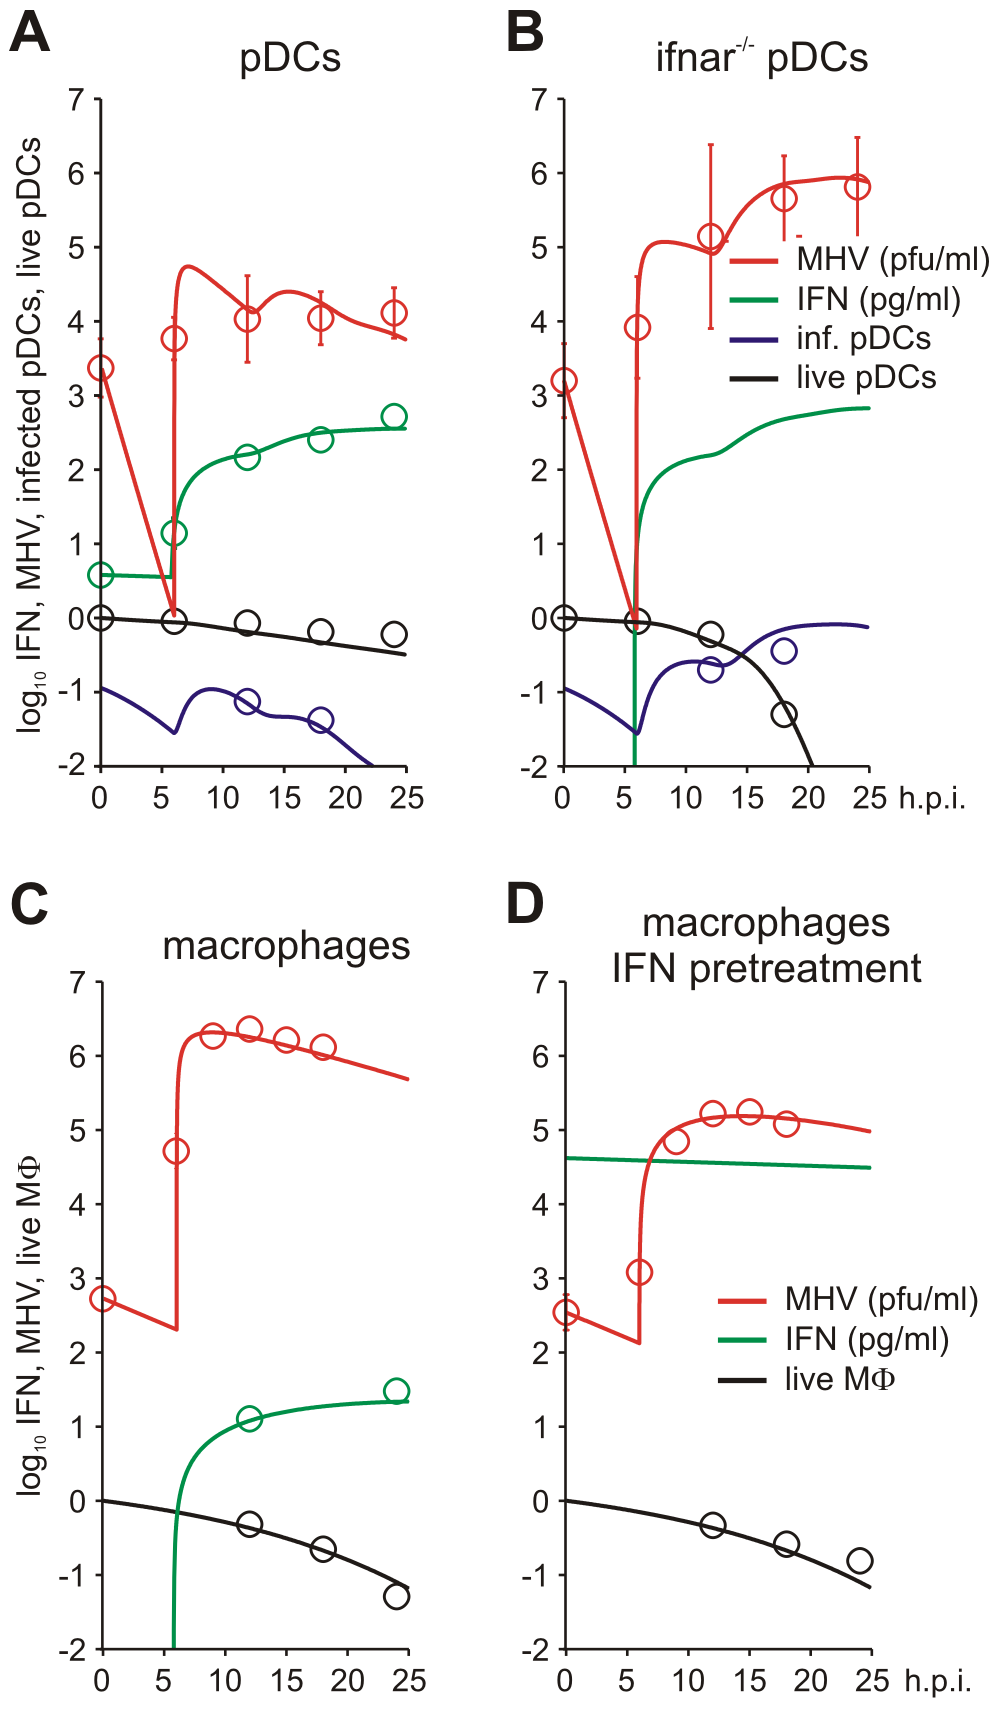 MHV infection and IFN response kinetics in vitro.